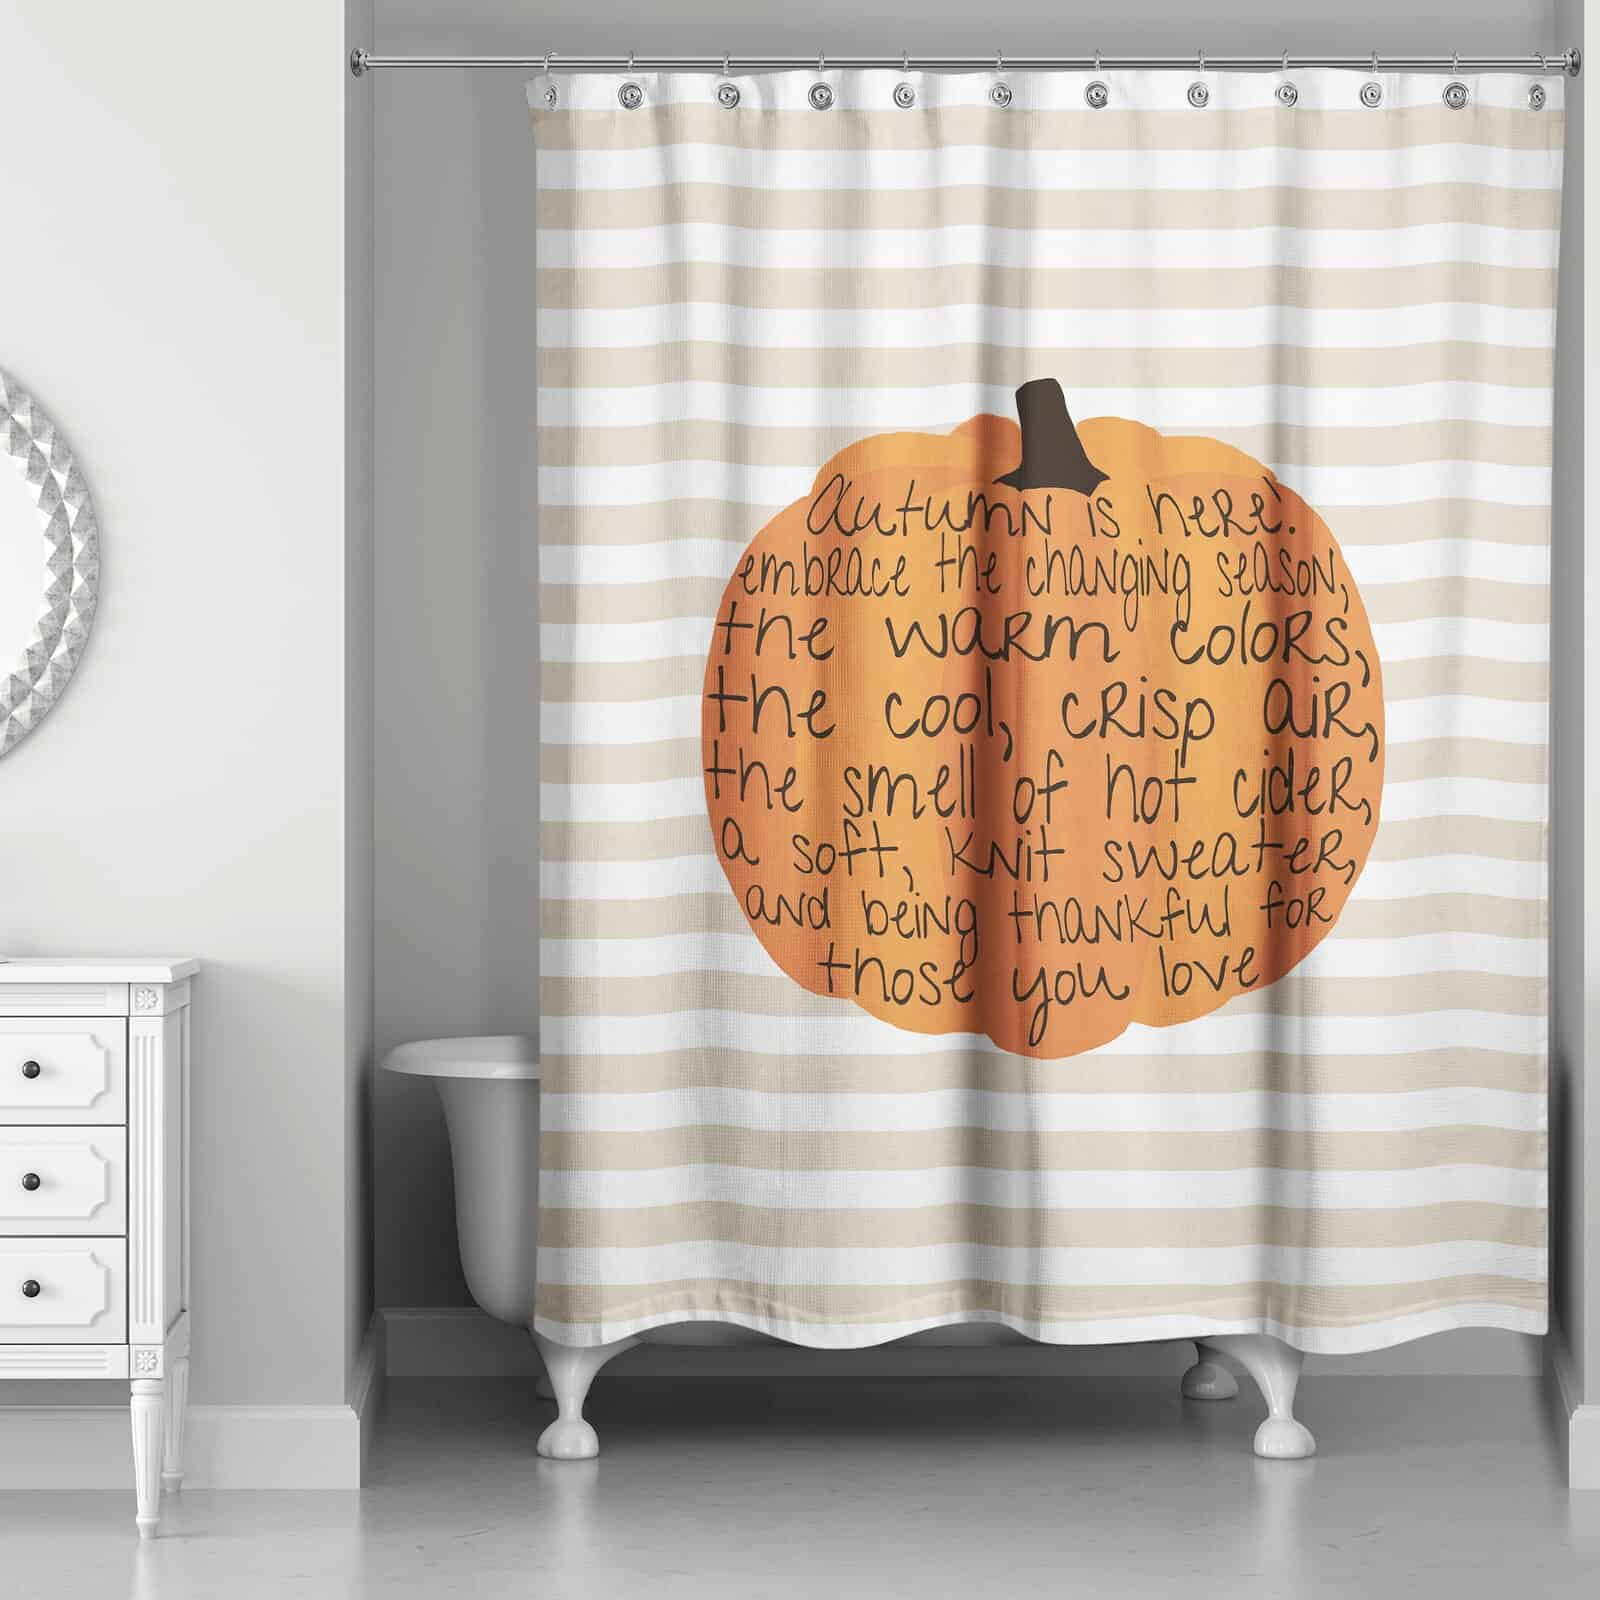 Touch Up the Bathroom with a New Shower Curtain